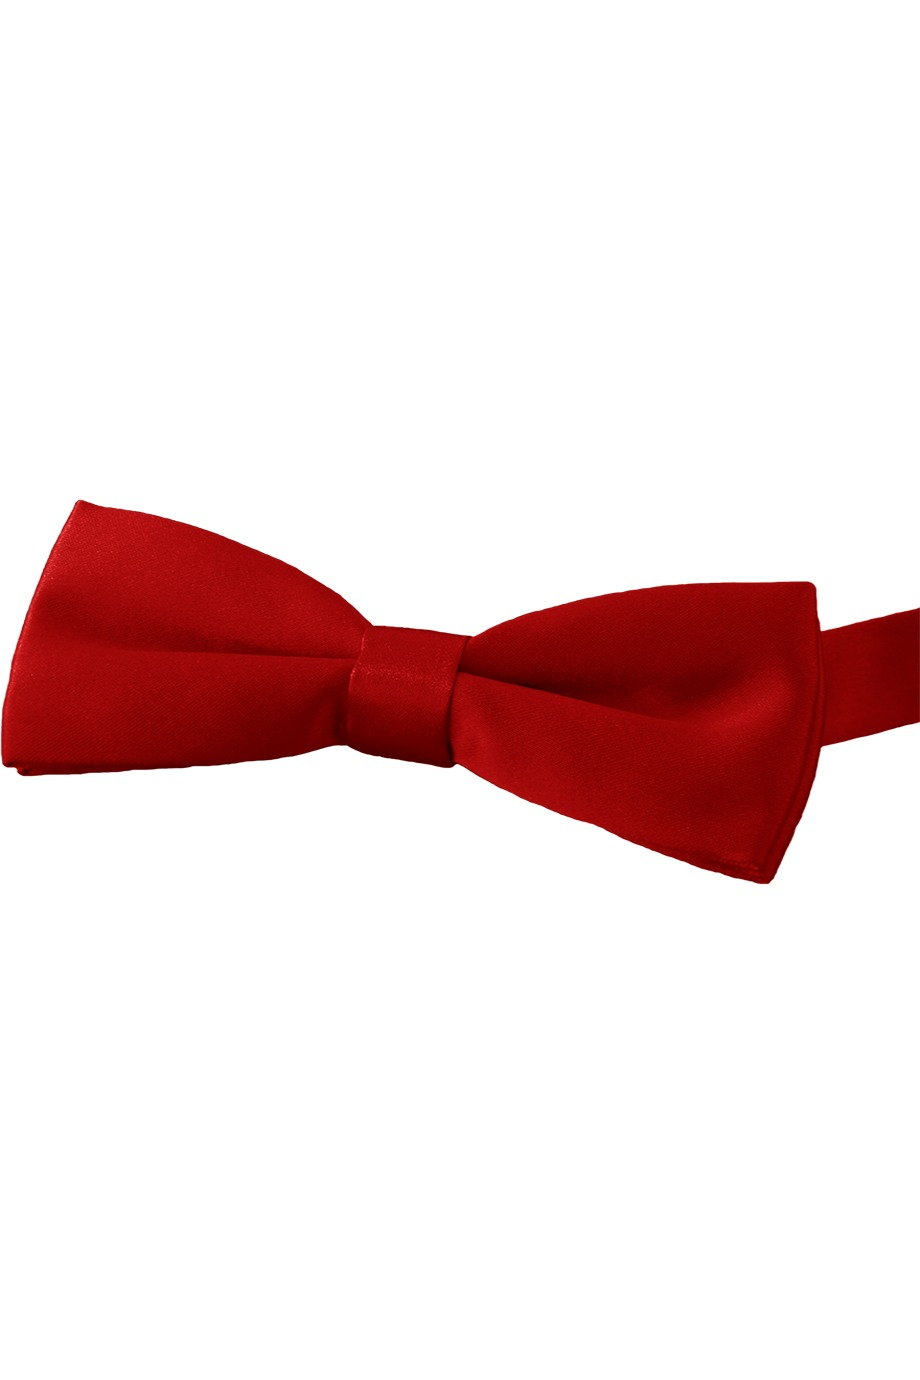 Edwards Garment TT00 - Satin Bow Tie